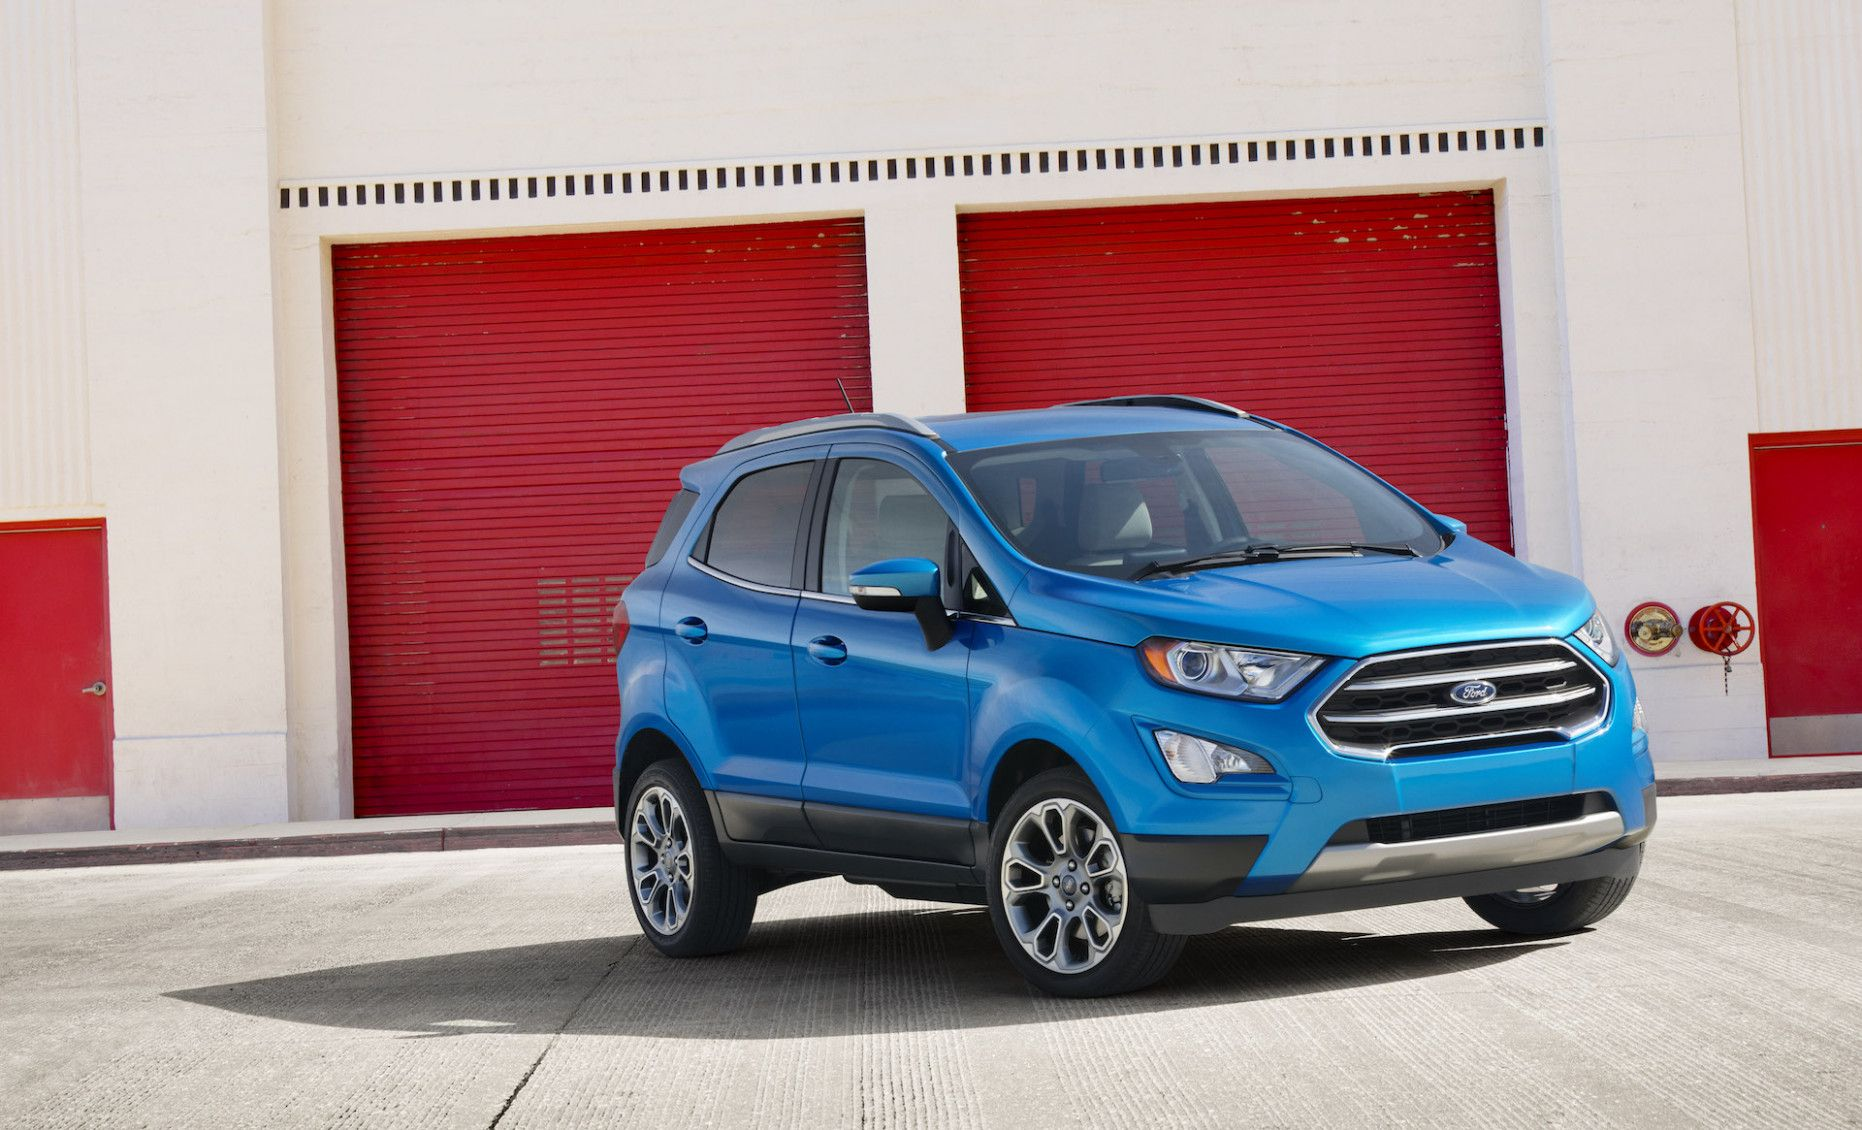 Ford Suv 2020 Review Ford ecosport, suv